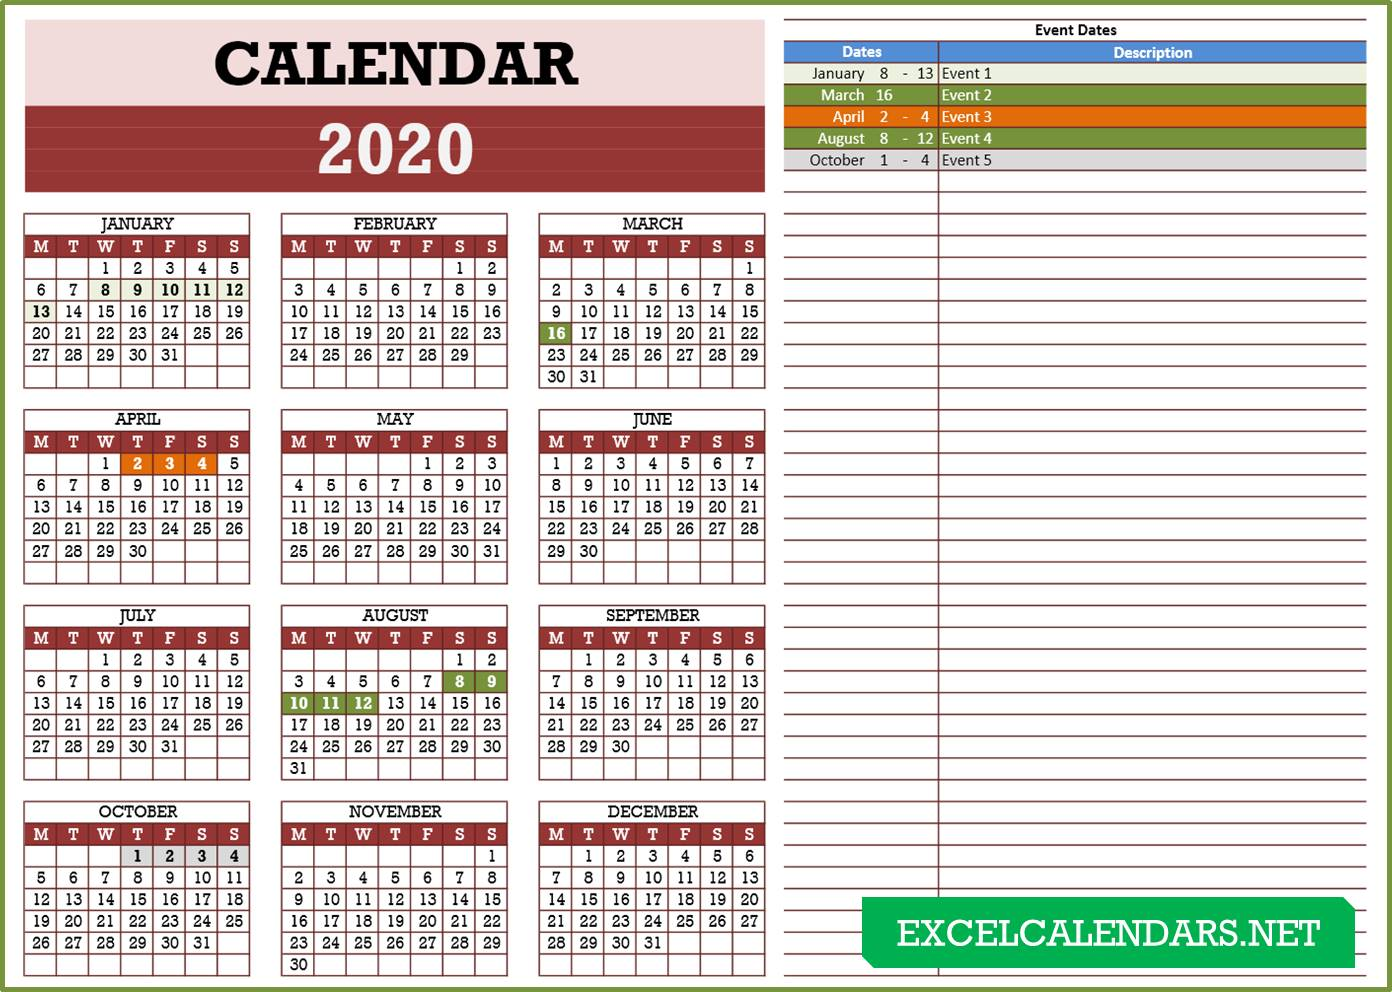 2020 Calendar Template Excel: Yearly Calendar Templates For Year 2019